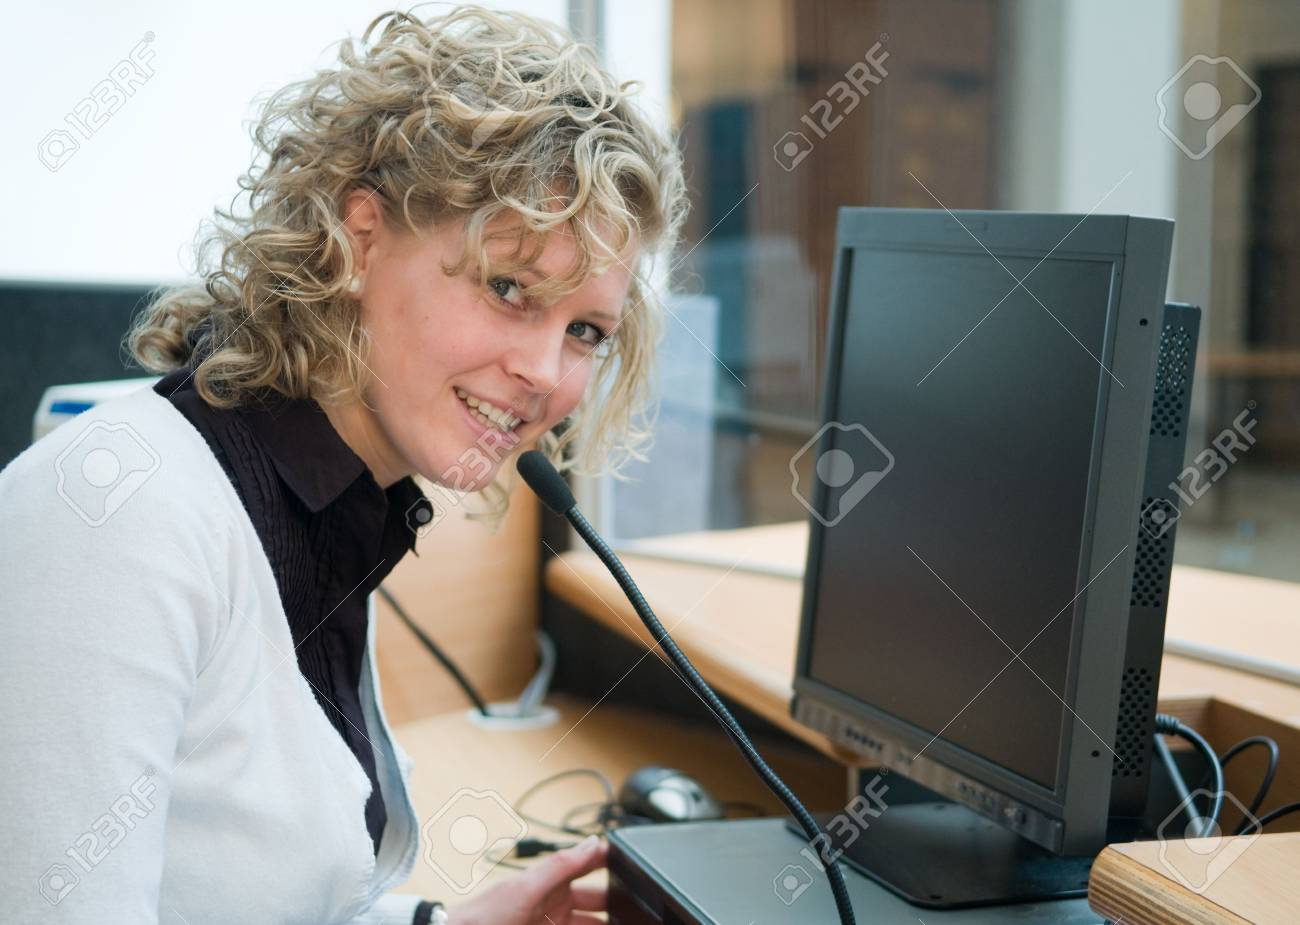 Frontdesk worker in an office Stock Photo - 4834469